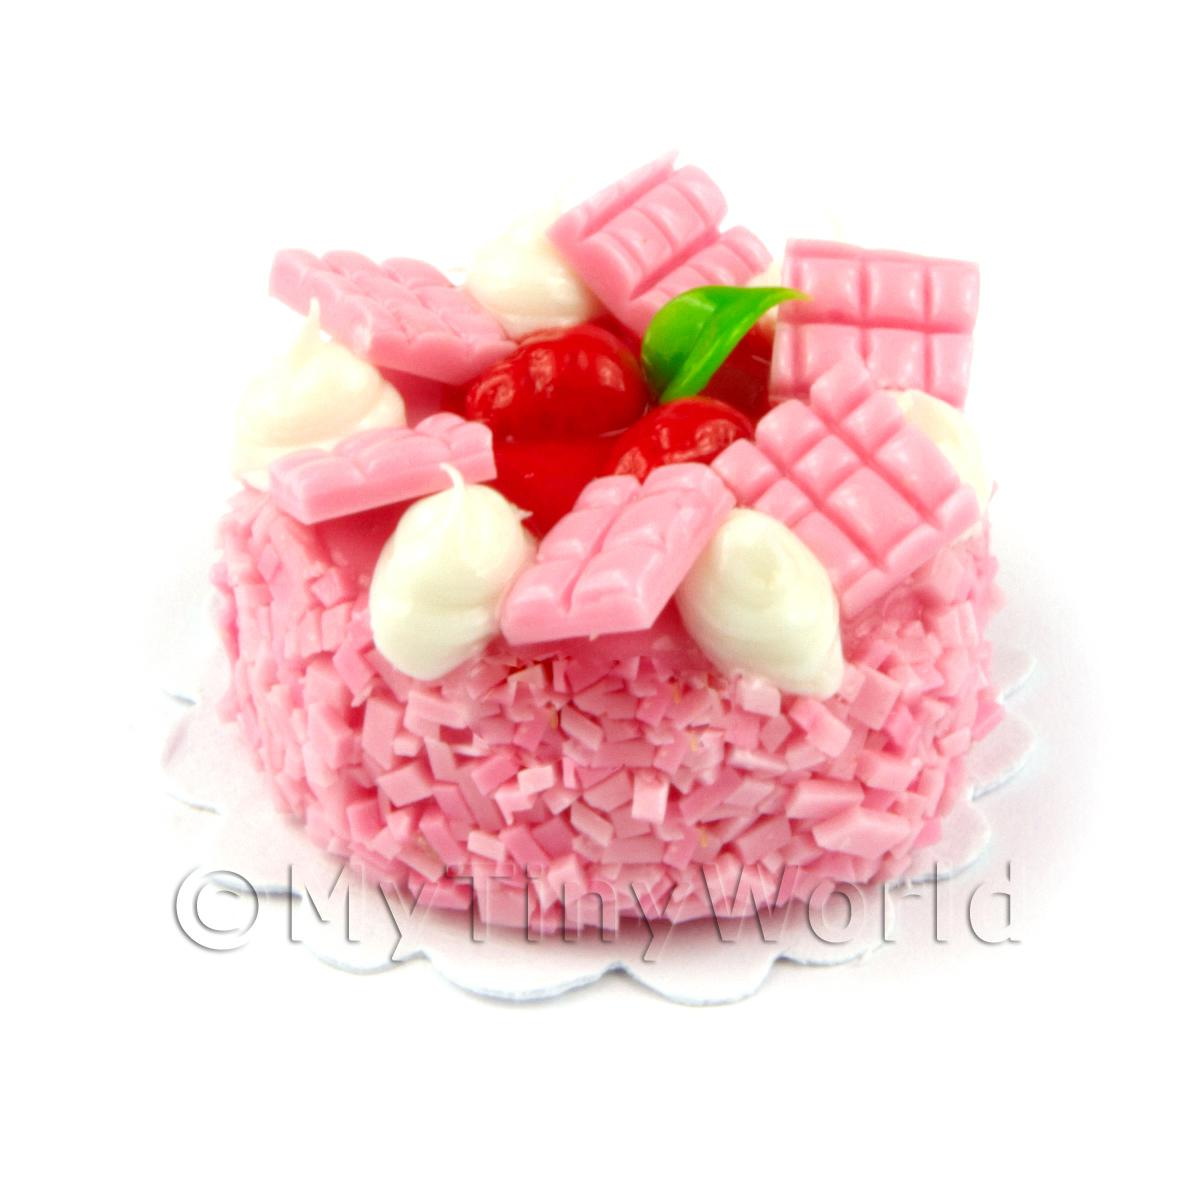 Dolls House Handmade Tiny 25mm Pink Iced Strawberry Cake